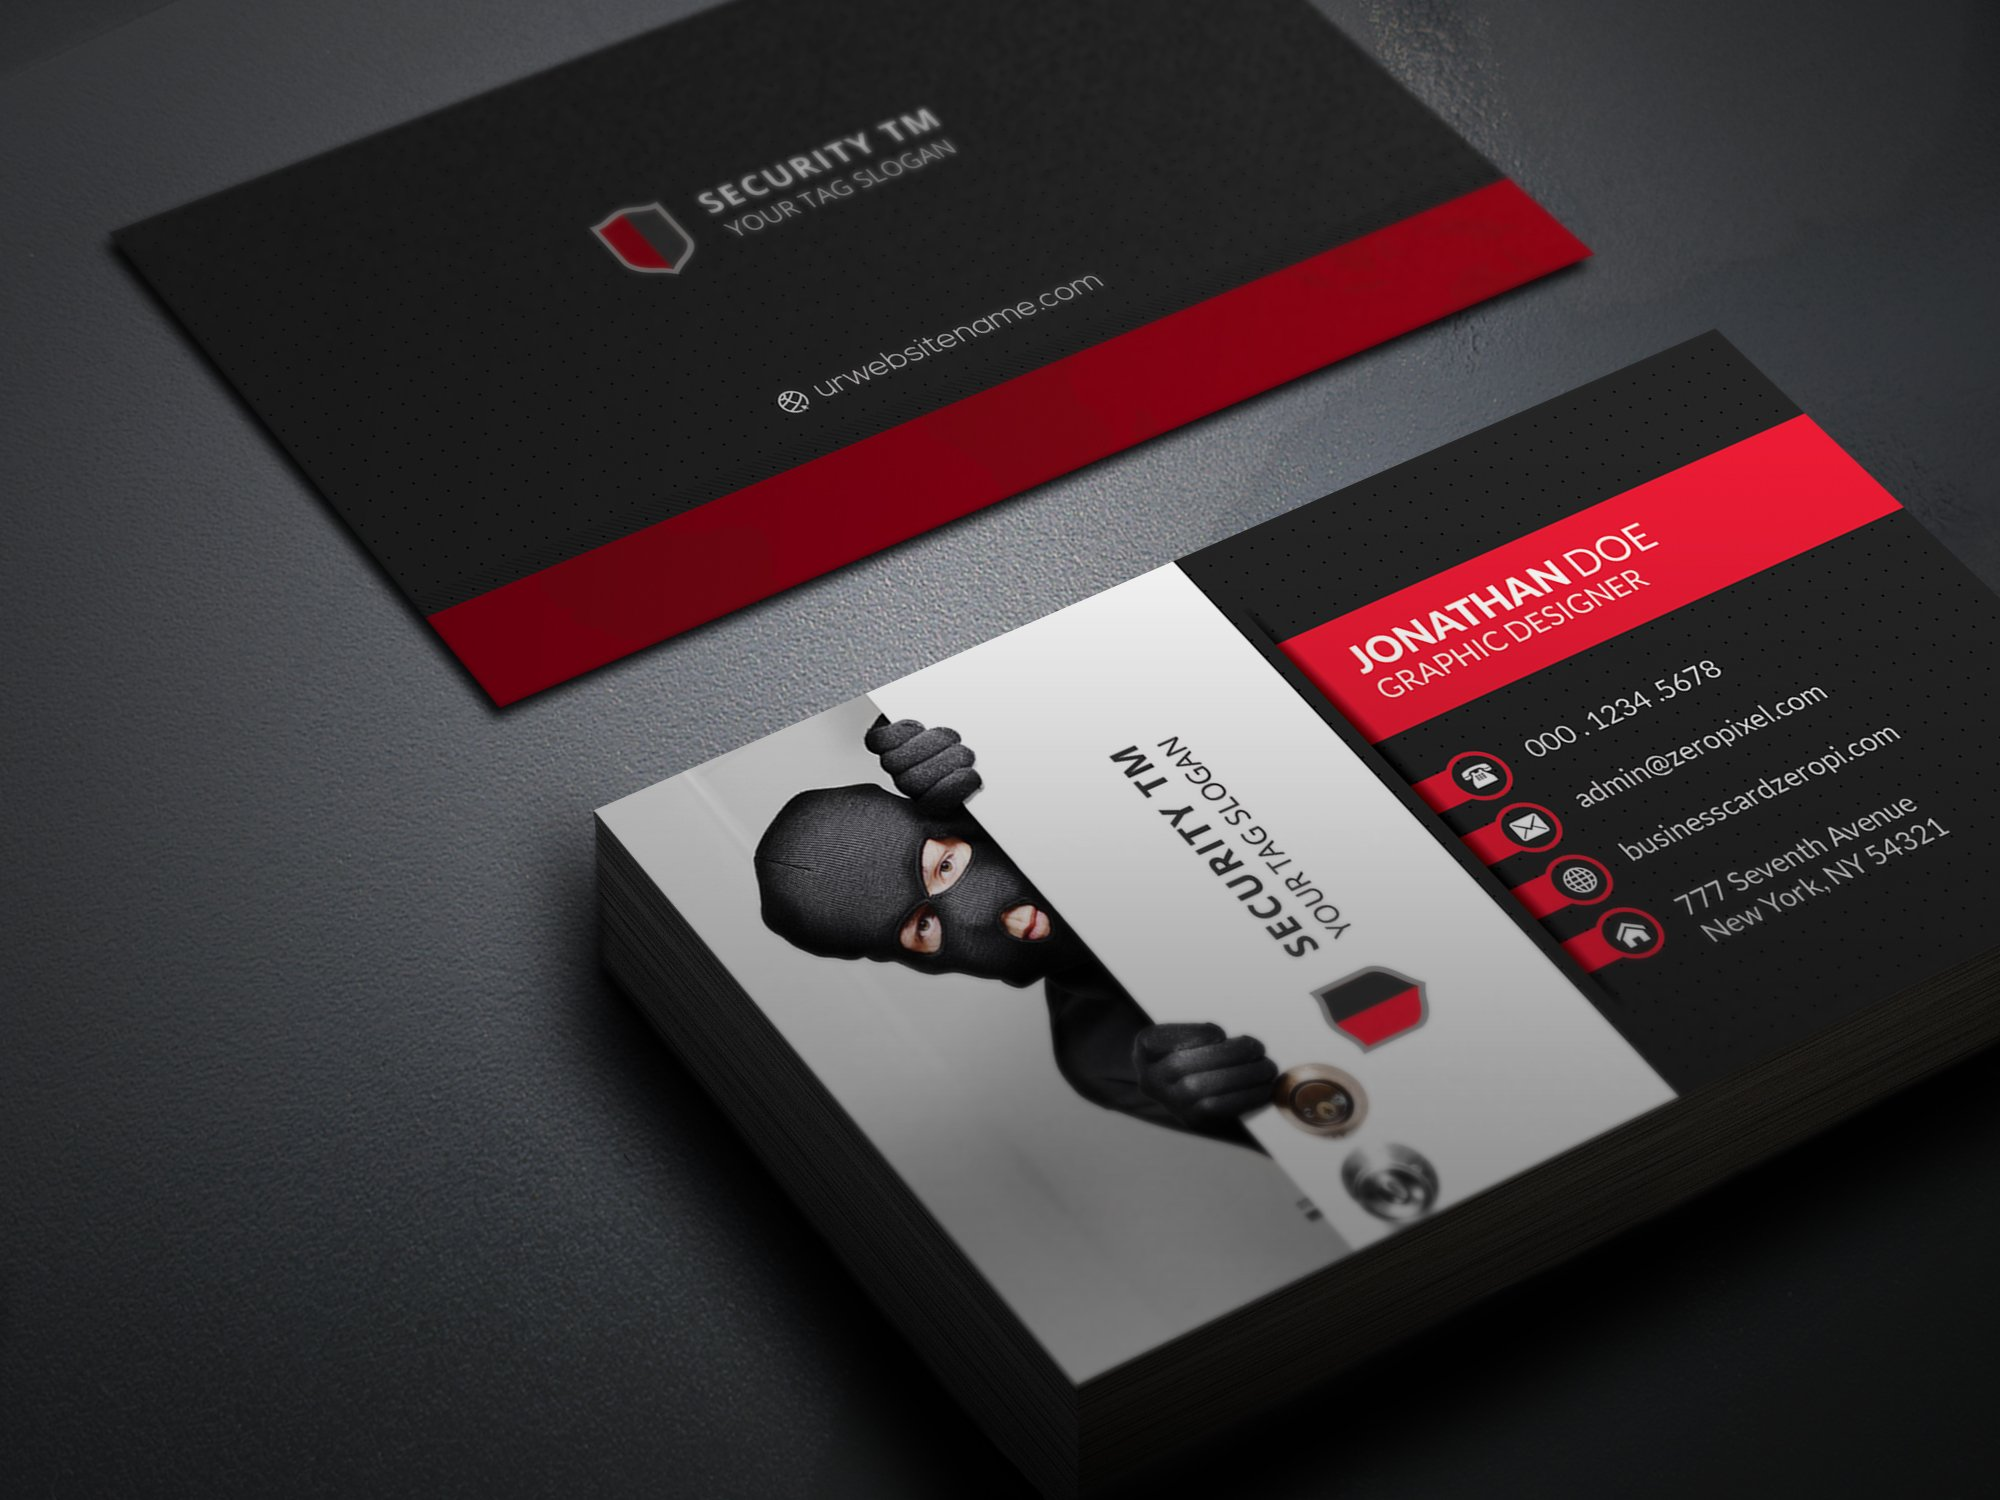 Security team business card business card templates for Cctv business card